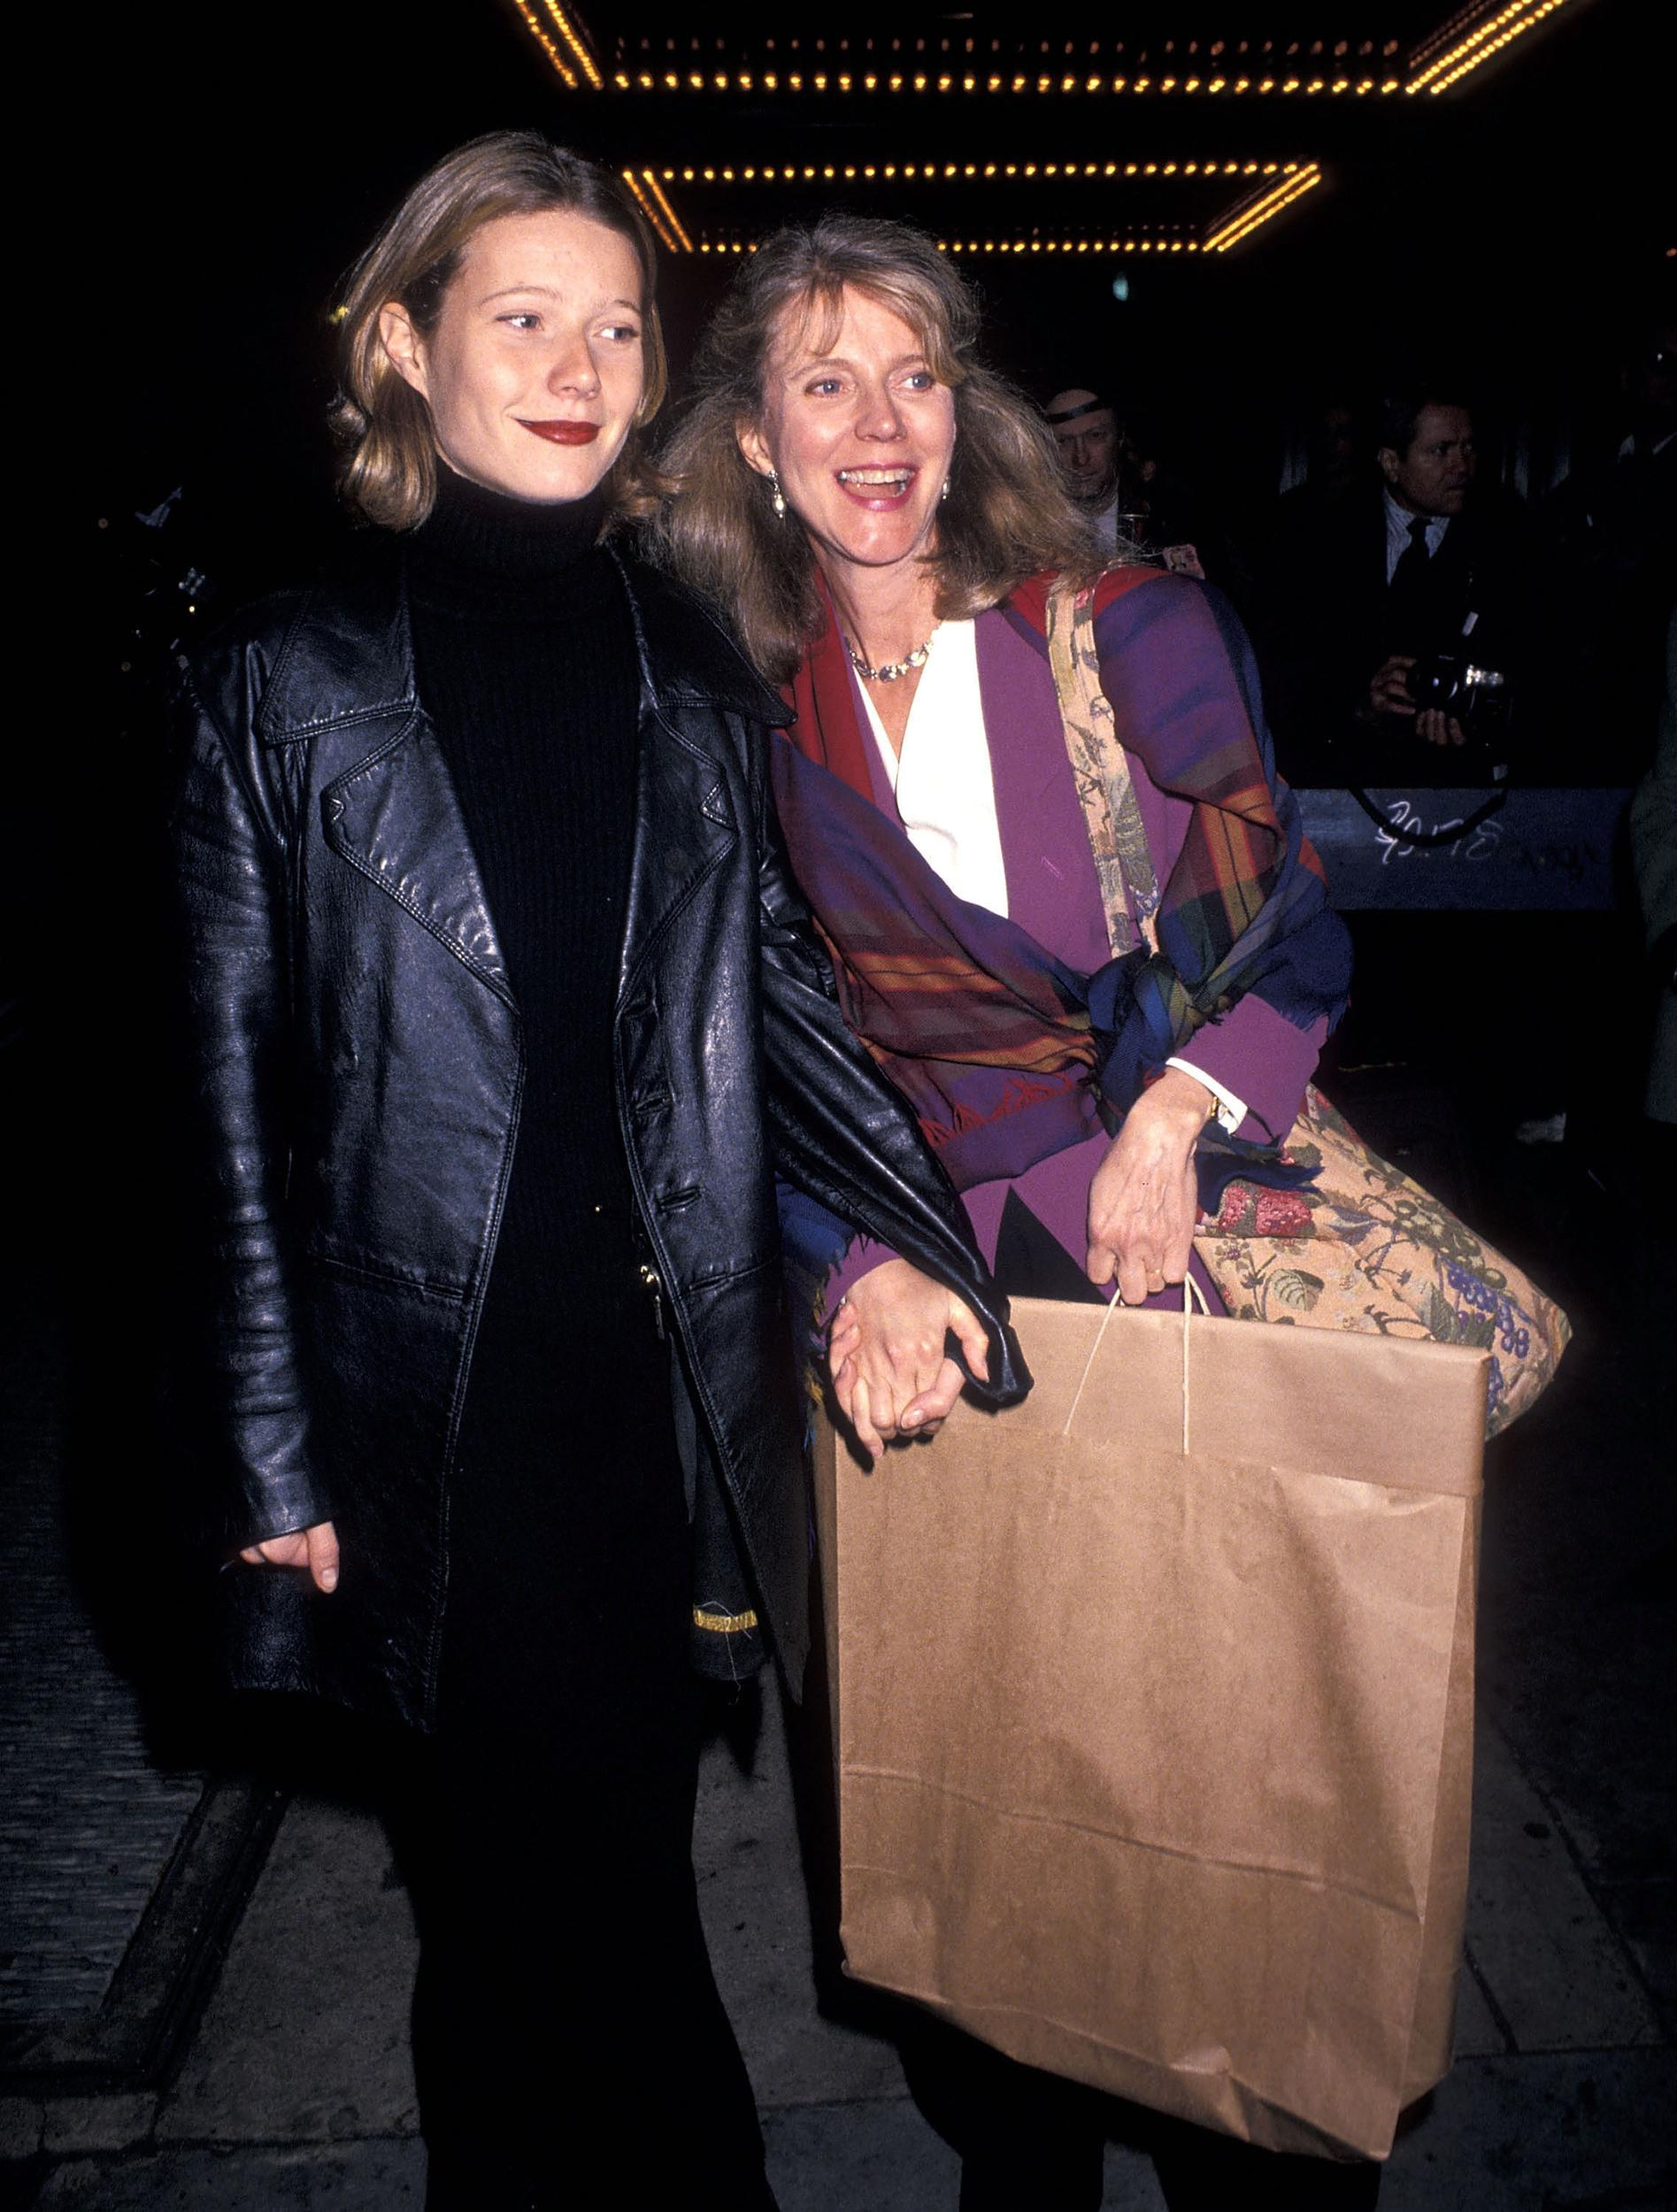 Actress Blythe Danner and daughter actress Gwyneth Paltrow attend 'The Saint of Fort Washington' New York City Premiere on November 16, 1993 at the Worldwide Plaza Cinema in New York City. (Photo by Ron Galella, Ltd./WireImage)